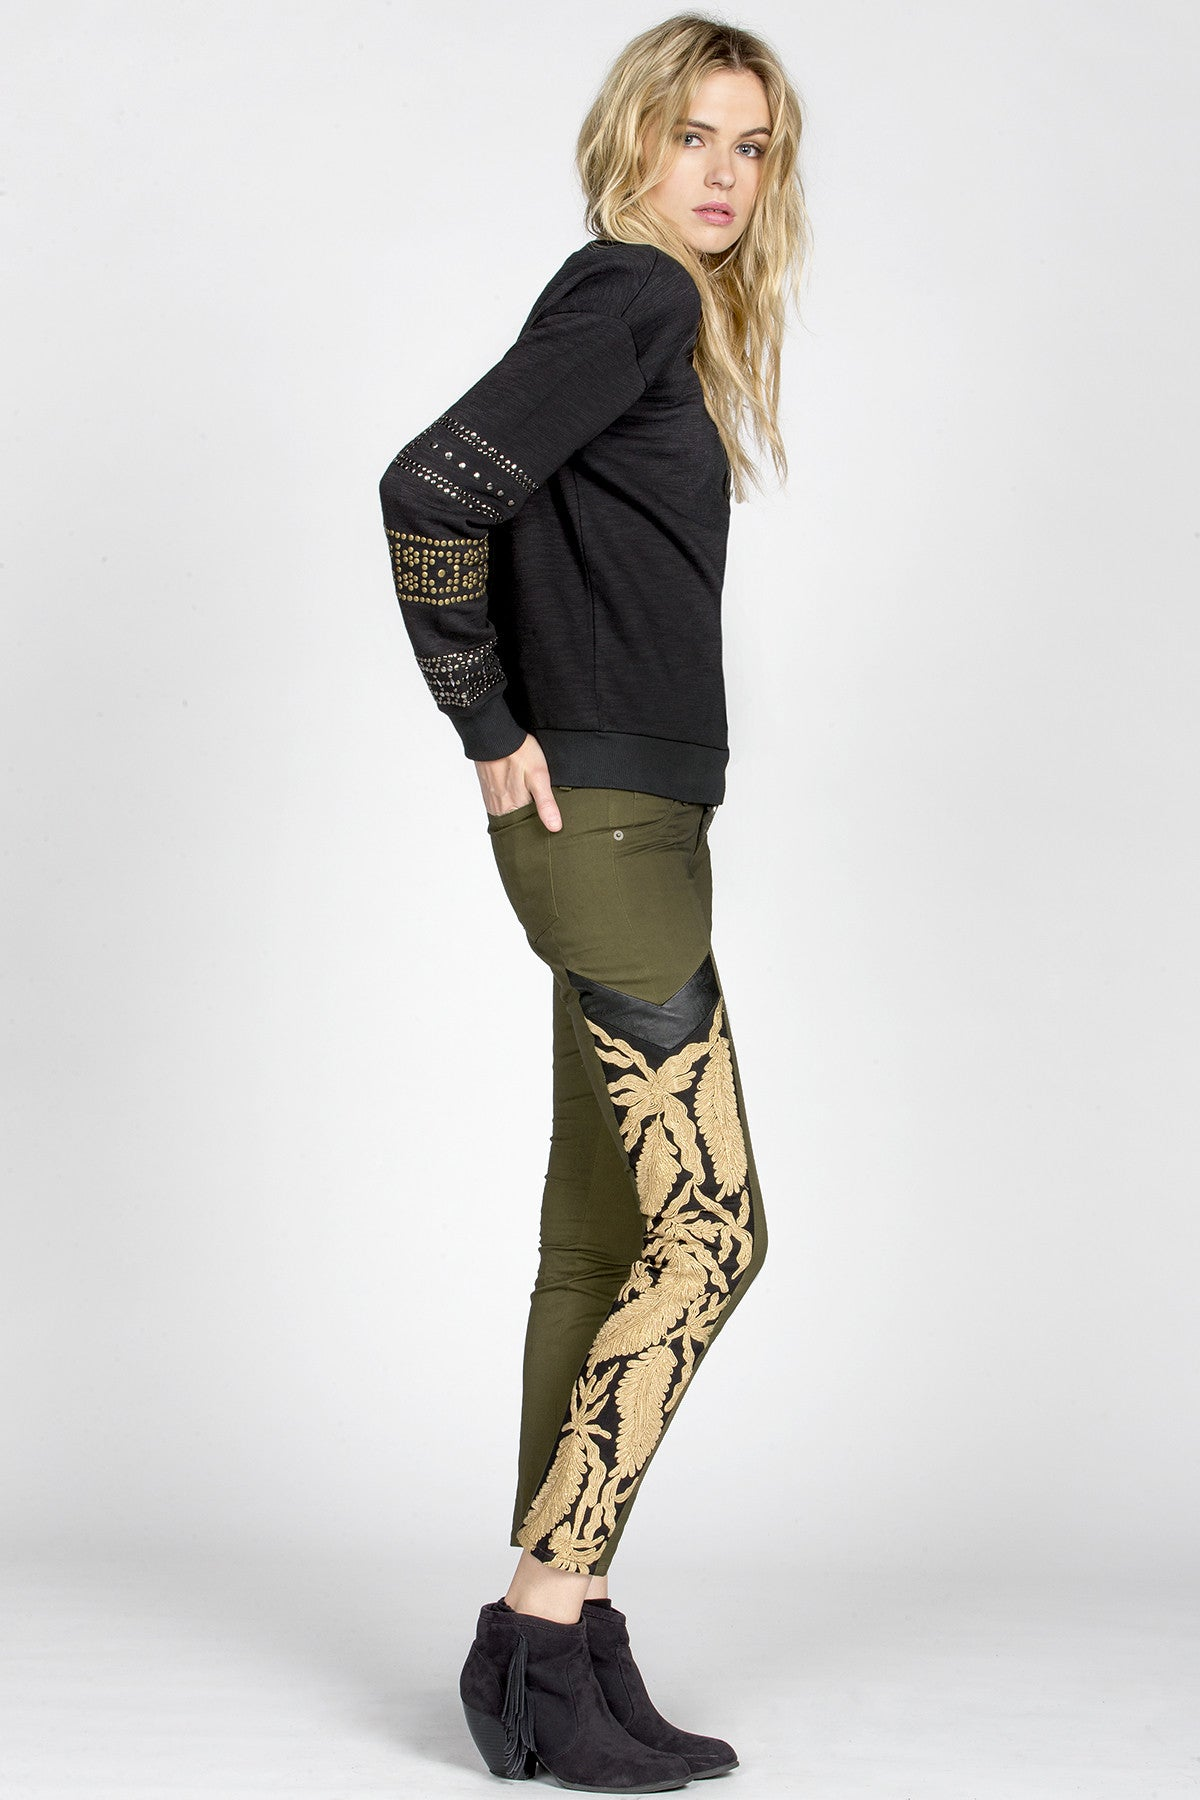 MM Vintage Strike Gold Embroidered Pants-4